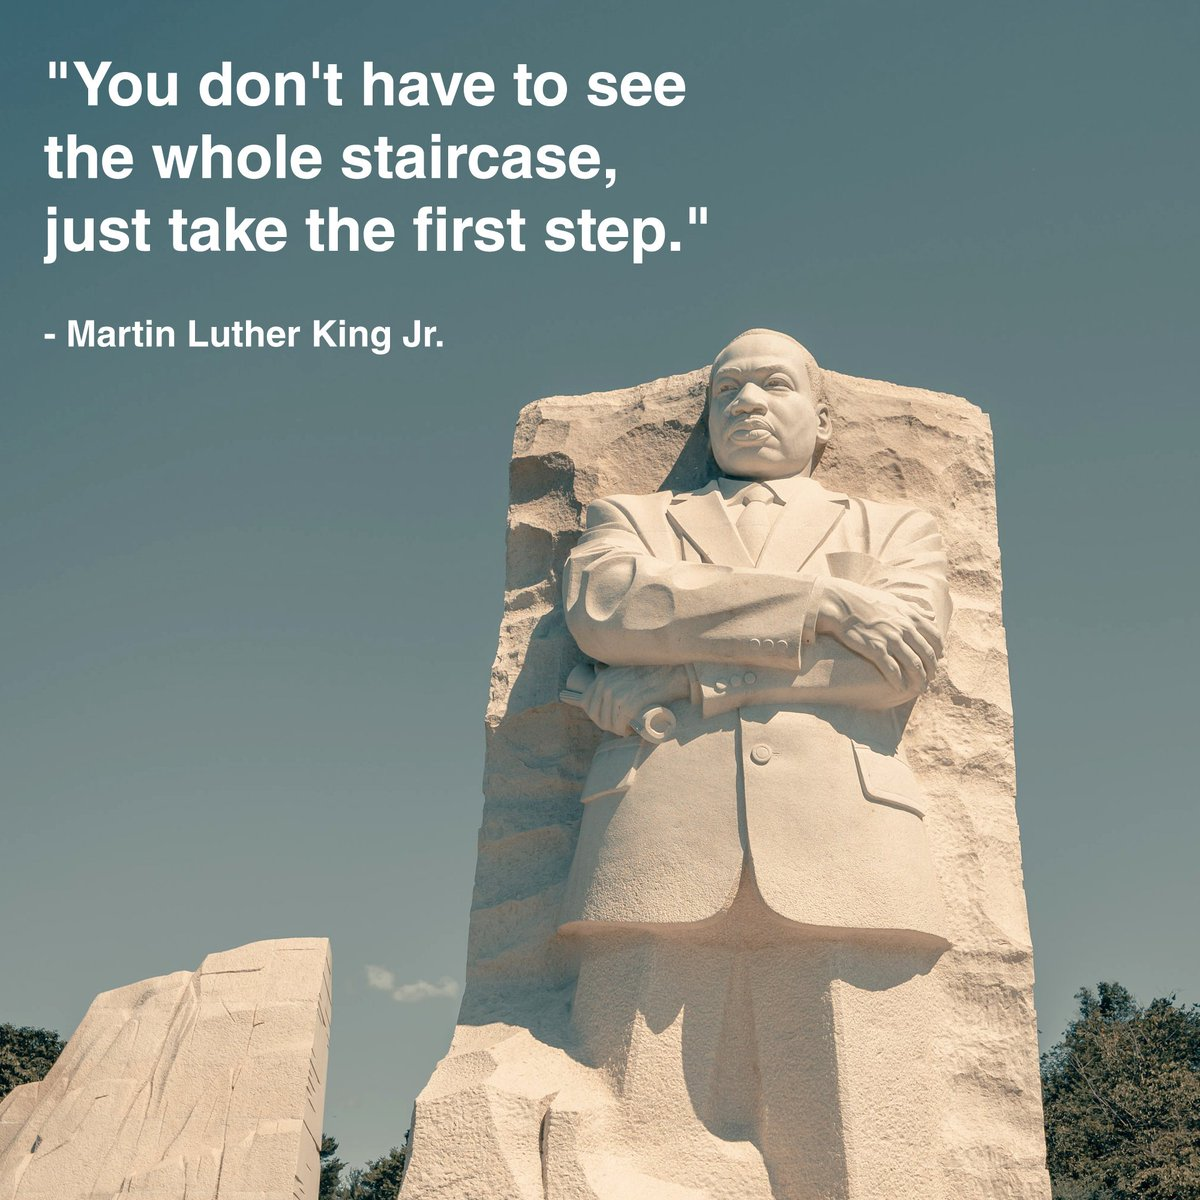 Today we honor Martin Luther King Jr. for advancing civil rights and social justice, as well as being a source of inspiration for many. #MLKjr #MLKday #MondayMotivation